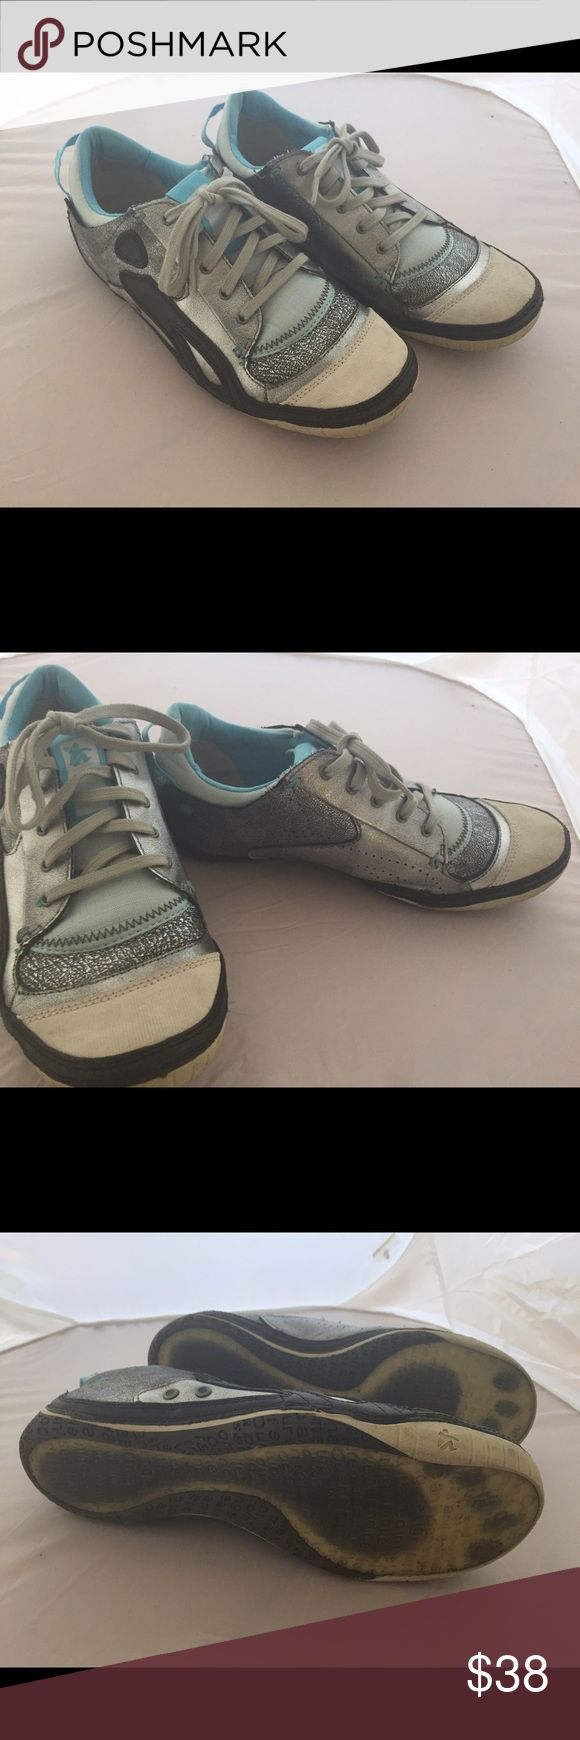 Cushe Silver/Blue Boutique Sneak Lace-up Size 10 Sassy sneakers! Be spicey and sporty in these rarely worn sneaks. Euro size 41, US 10. Cushe Shoes Sneakers